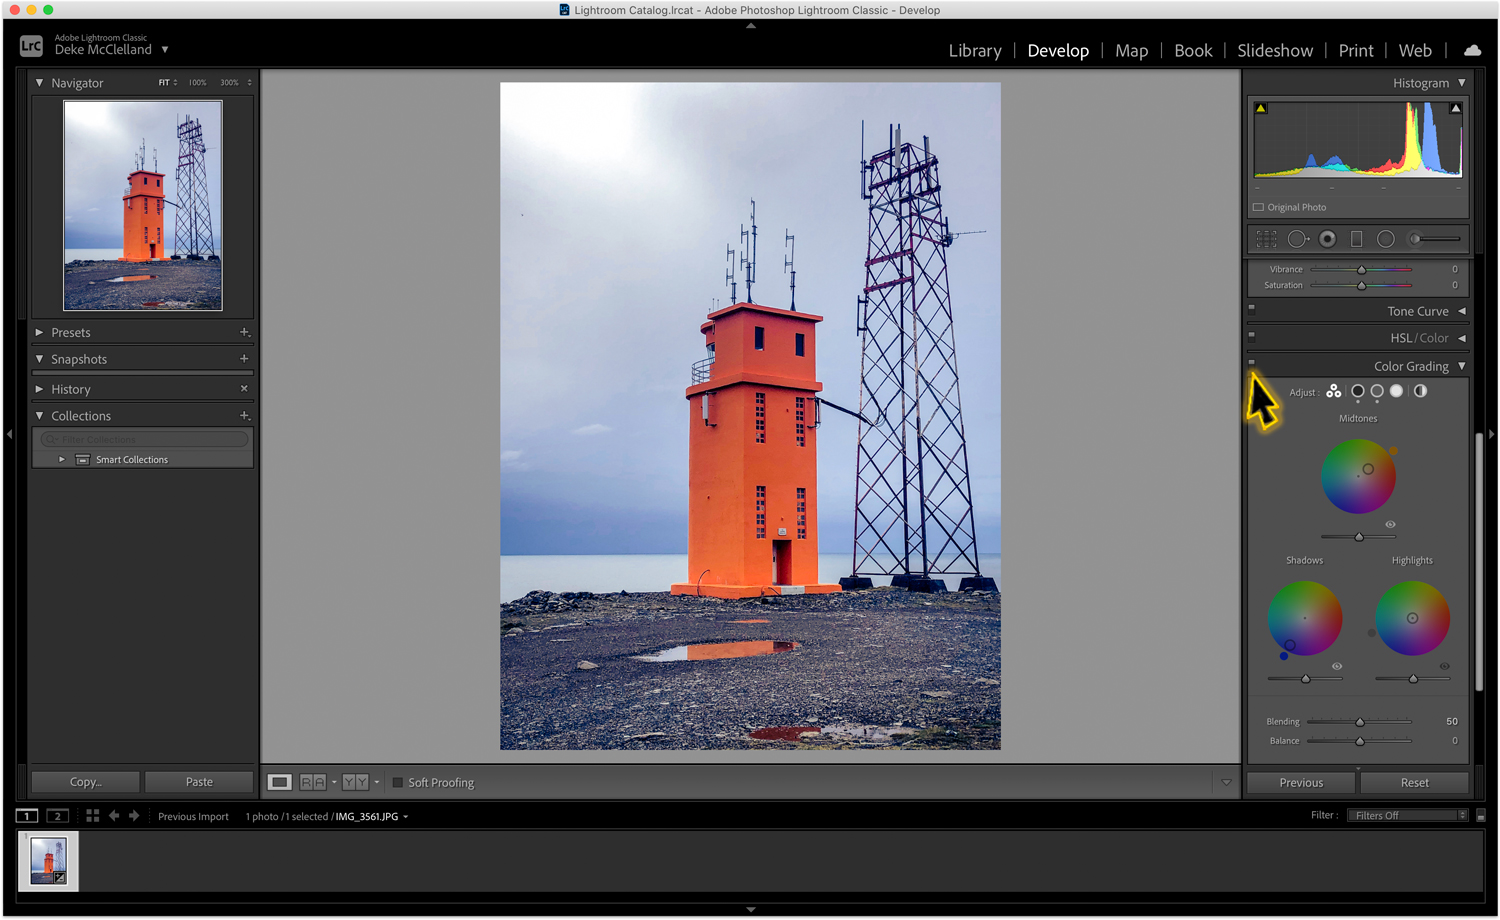 Orange lighthouse in Iceland with Lightroom interface